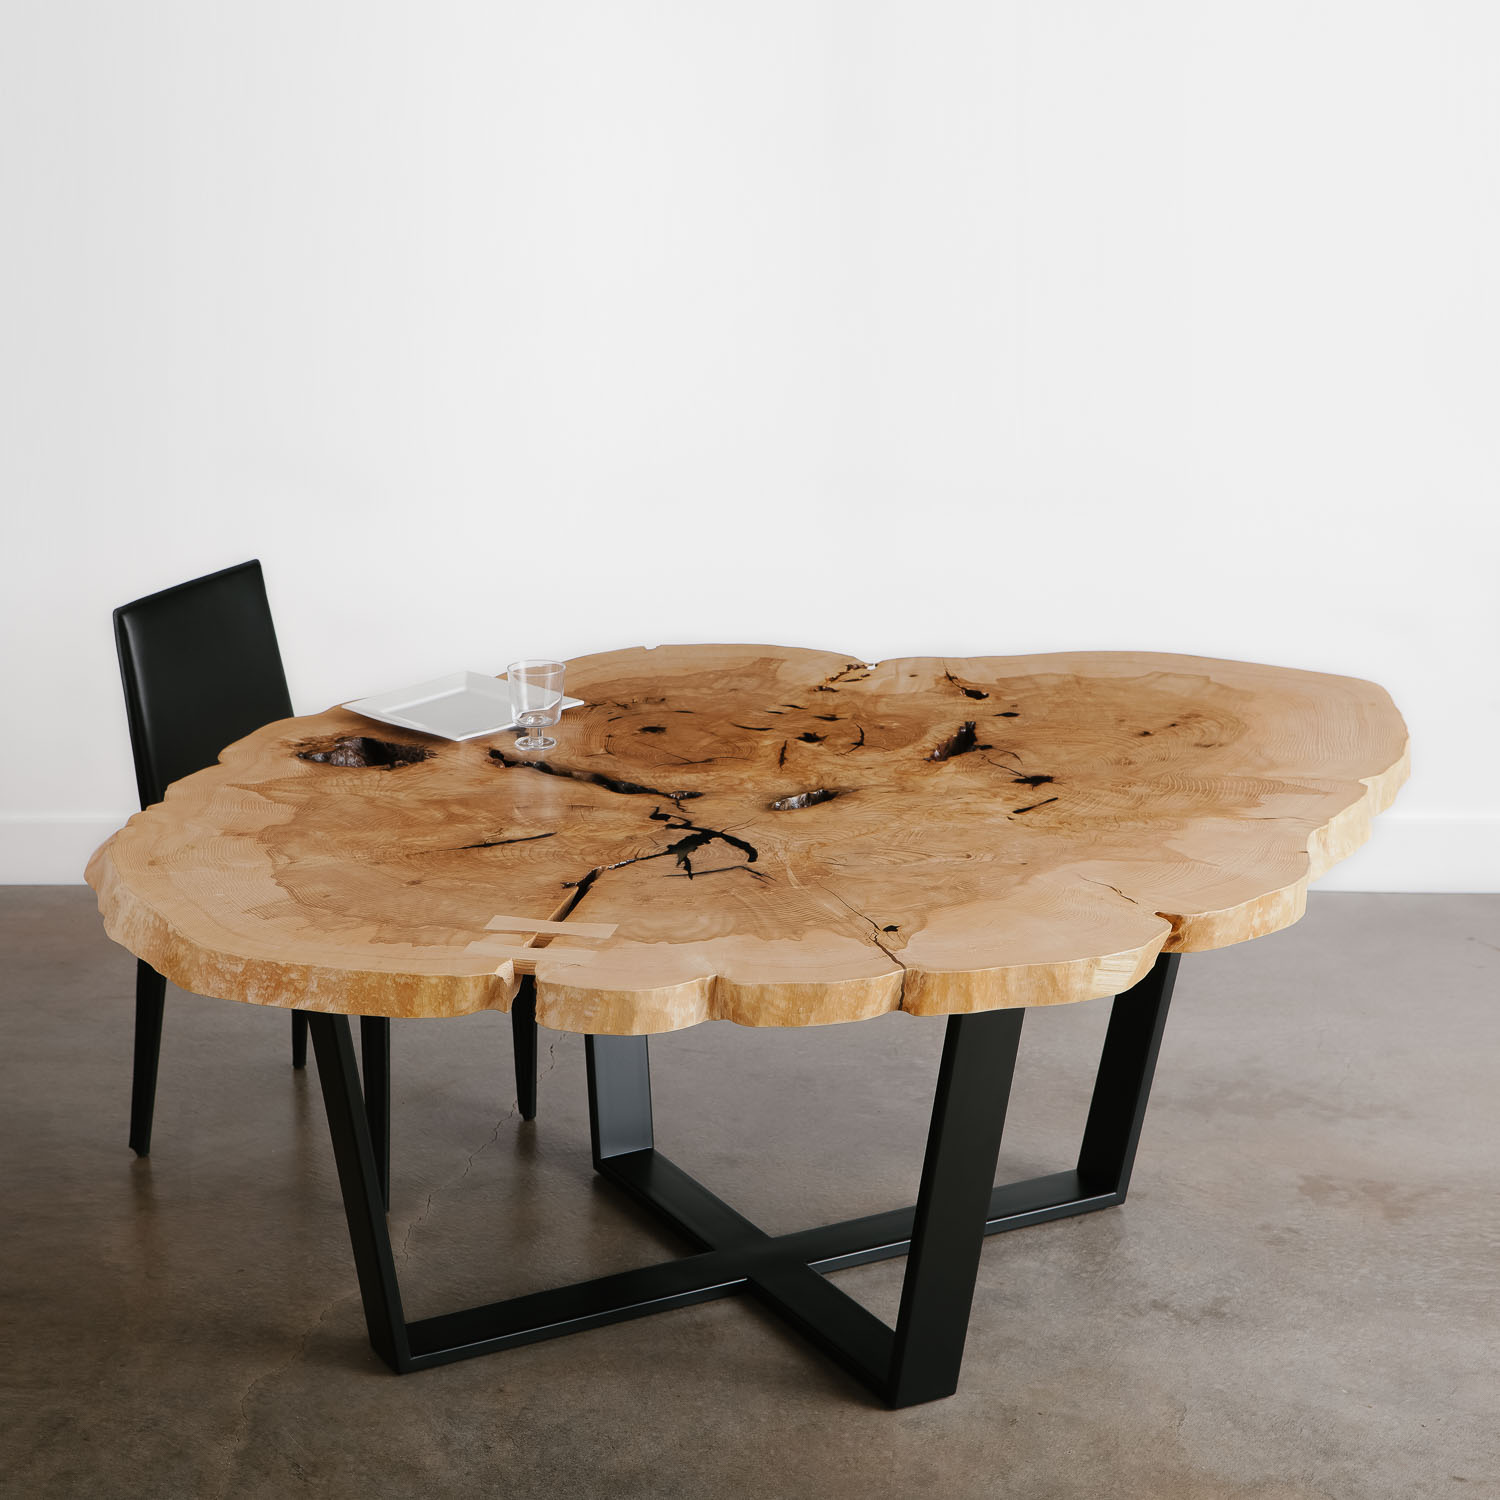 Ash Dining Table No 125 Elko Hardwoods Modern Live Edge Furniture Dining Coffee Tables Desks Benches